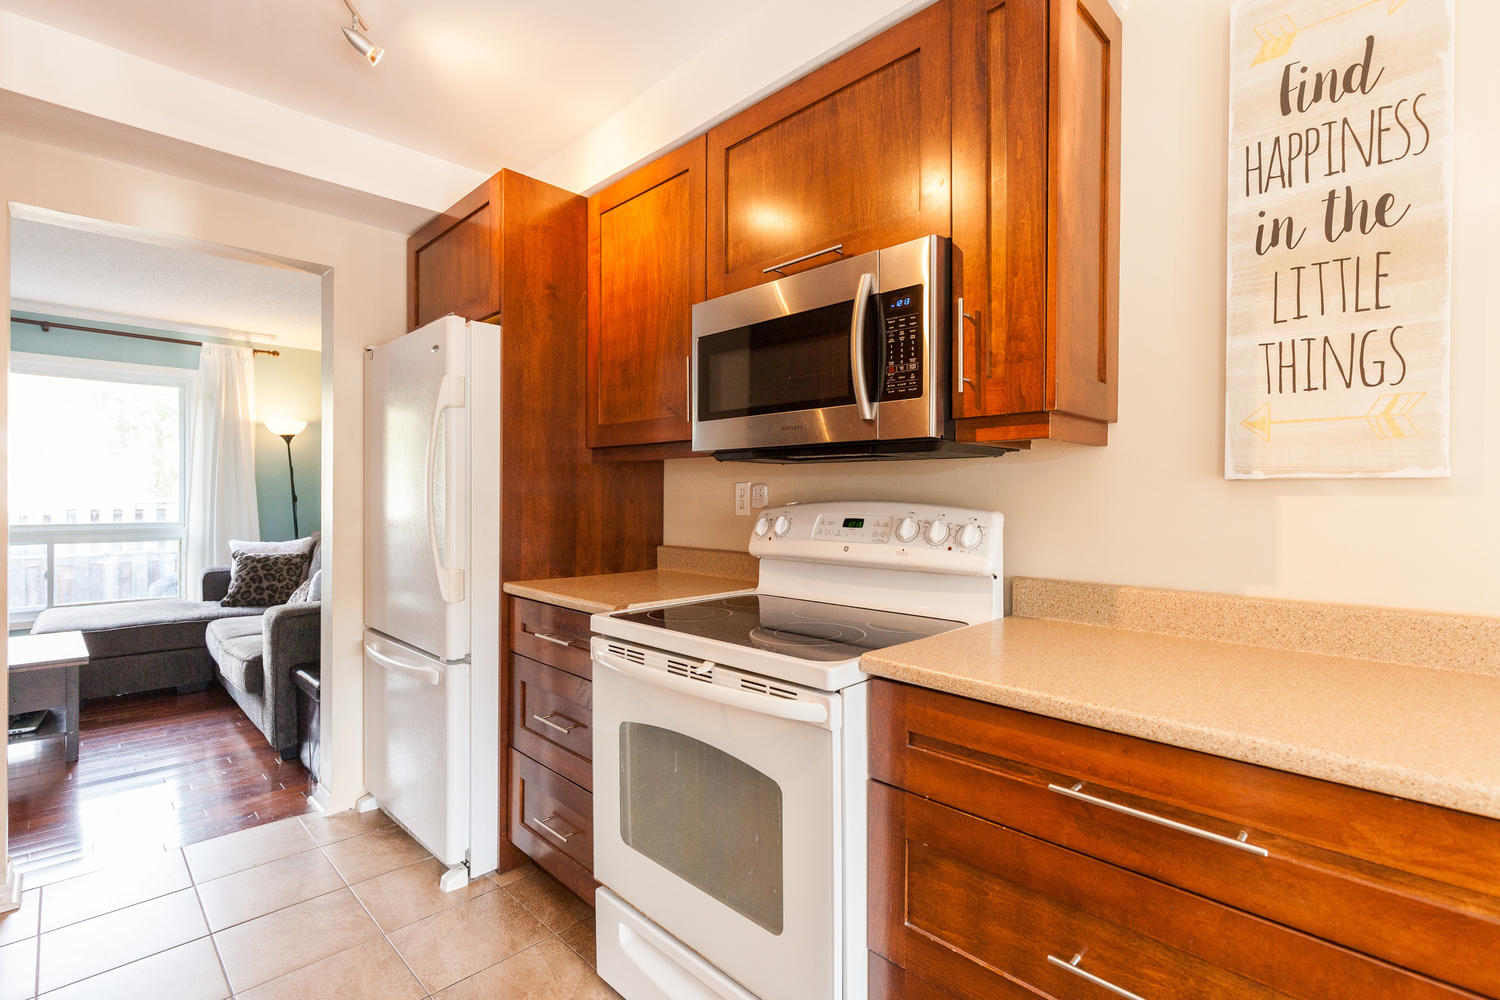 This beautifully renovated kitchen comes with soft close cabinetry and drawers